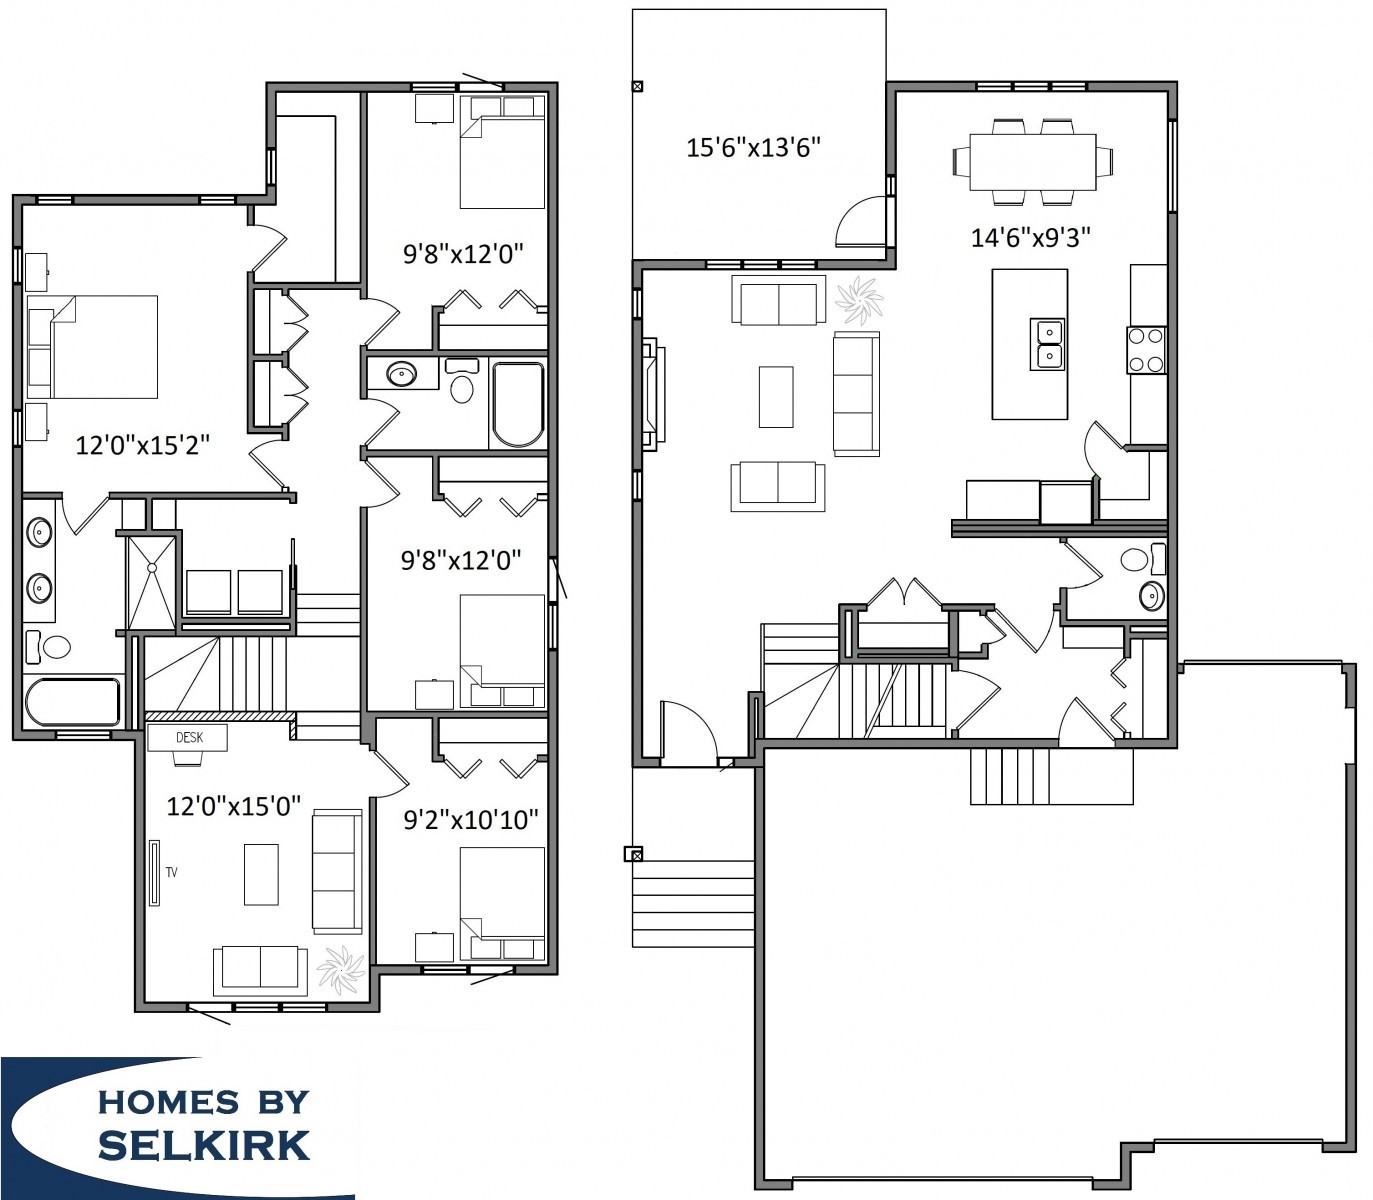 522 Kenaschuk Way Floor Plan